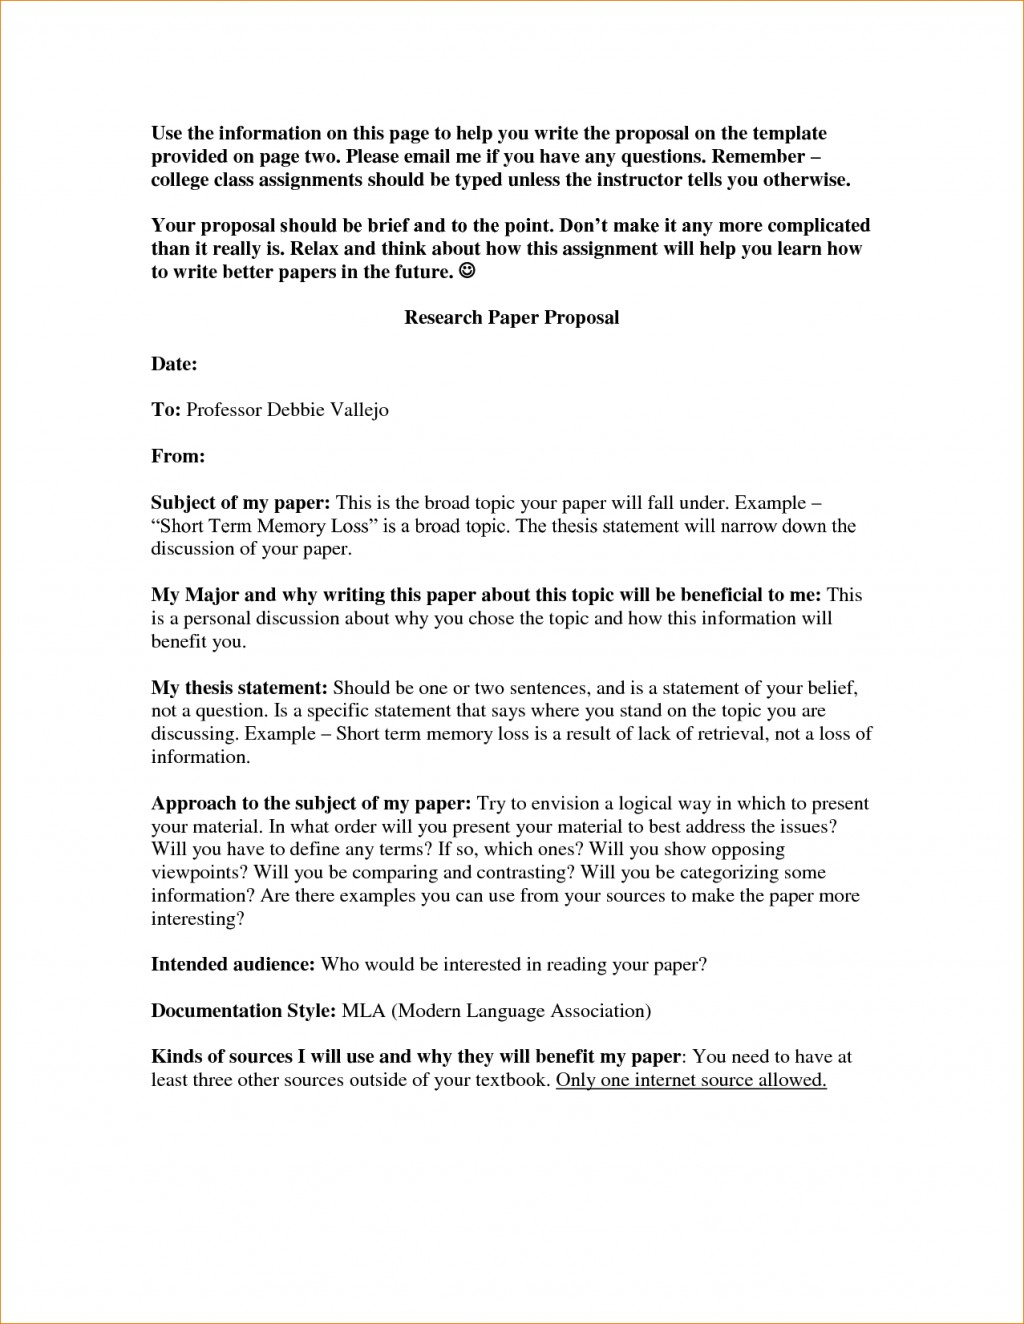 006 Examples Of Research Paper Proposals Proposal Template Magnificent Large